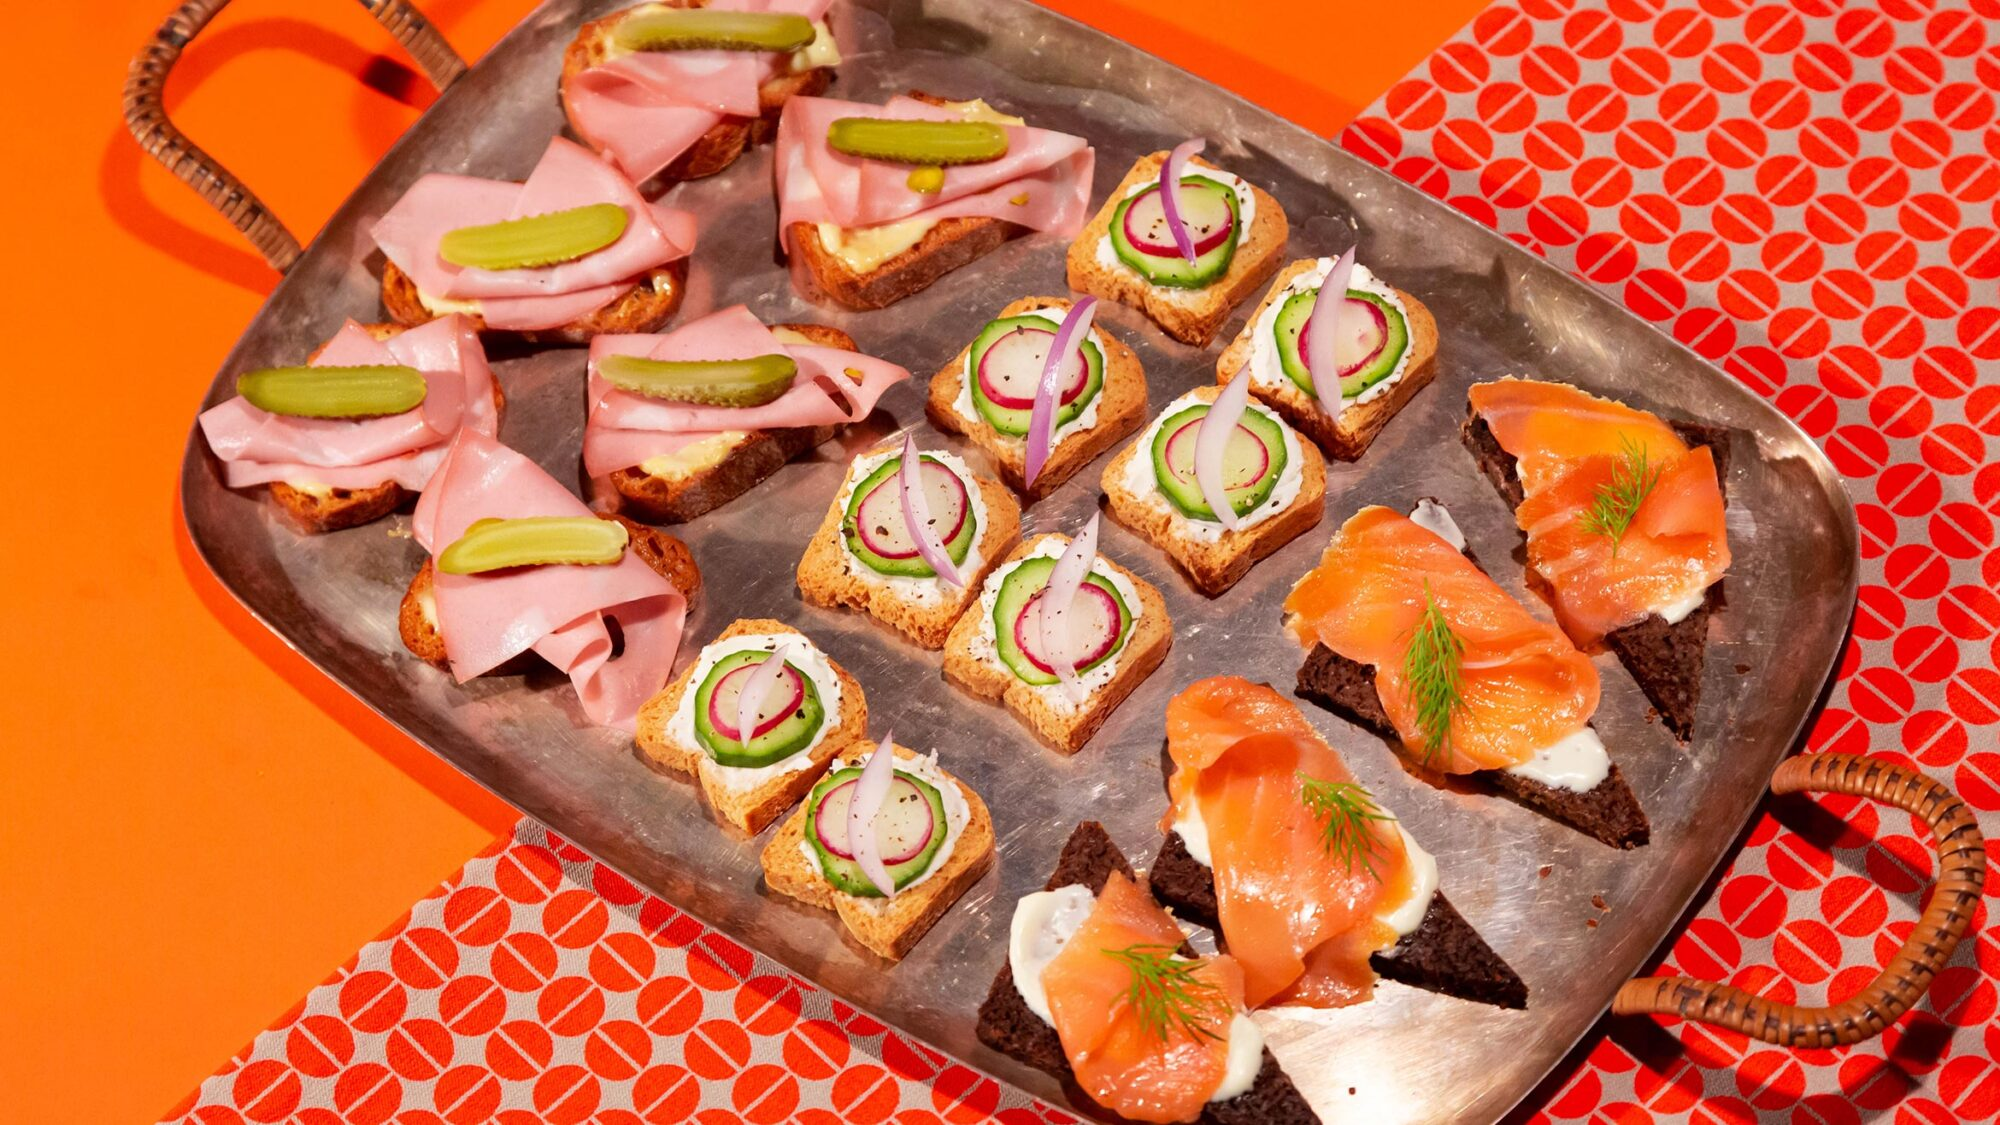 Article-Canapes-Trends-Entertaining-Recipe